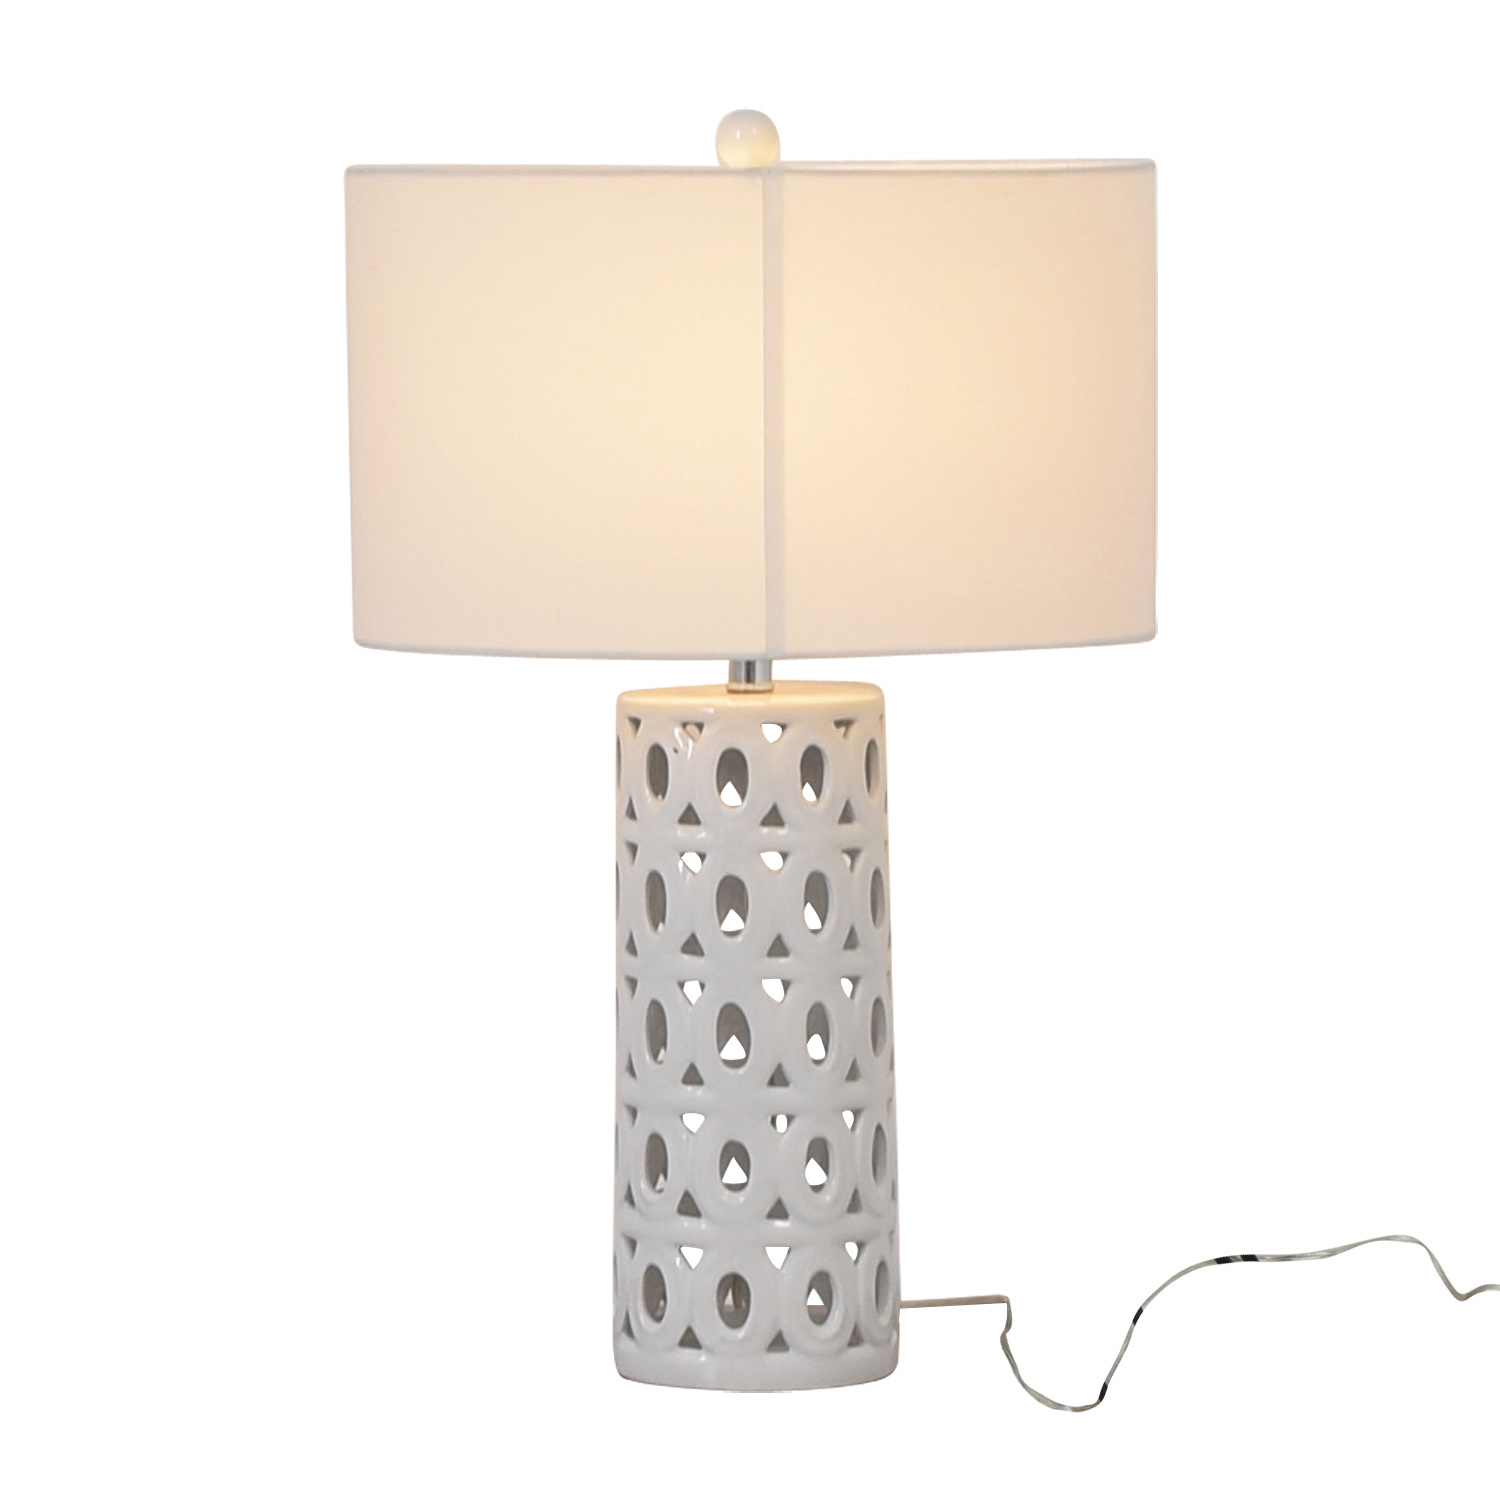 Crate & Barrel Crate & Barrel White Cut Out Table Lamp discount